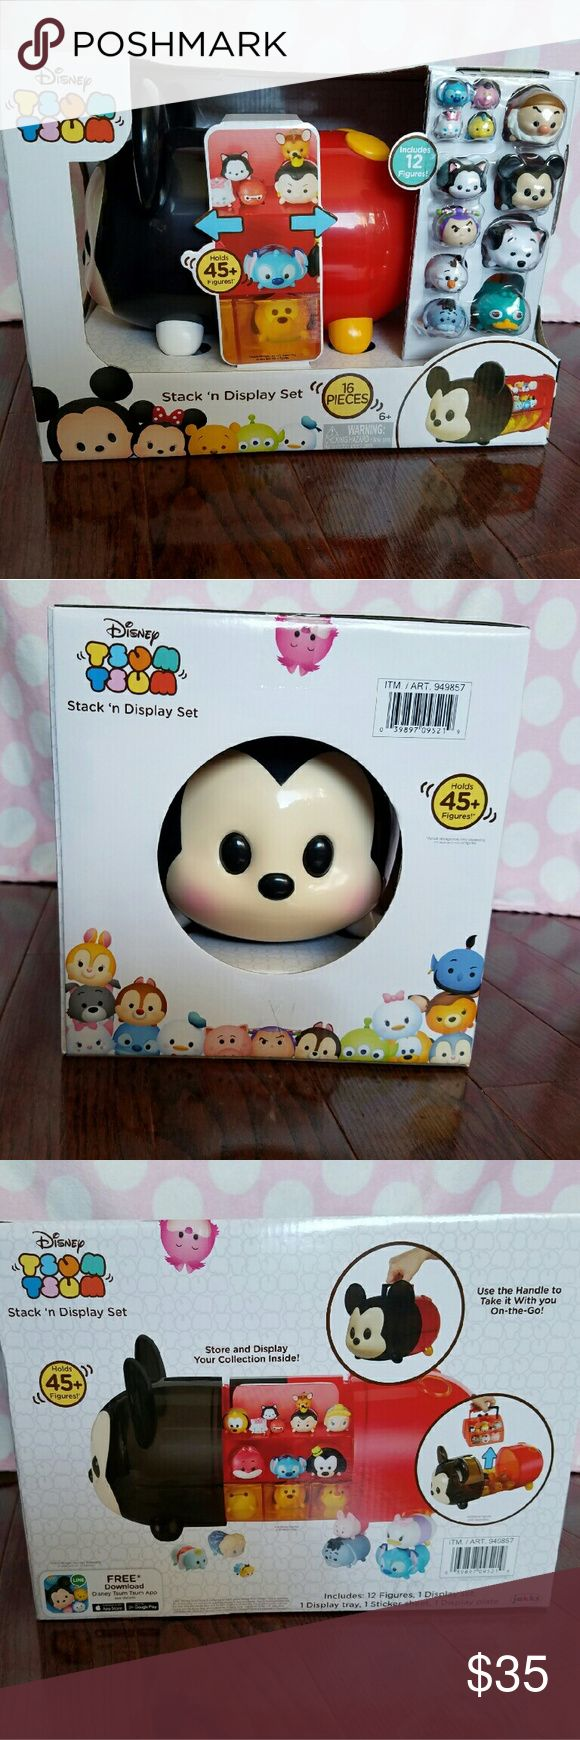 tsum tsum stack n display set Disney Tsum Tsum 16 Piece Stack 'n Display - - Collect, stack and display your favorite Disney Tsum Tsum characters with the new Winnie Stack 'n Display Set - Set comes with 12 figures and holds 45 plus figures in compartments of varying sizes - The movable shelves provide a perfect fit for all of your Tsum Tsum figures - Easy to clean, just wipe with a damp cloth Recommended for ages 6 and up Other